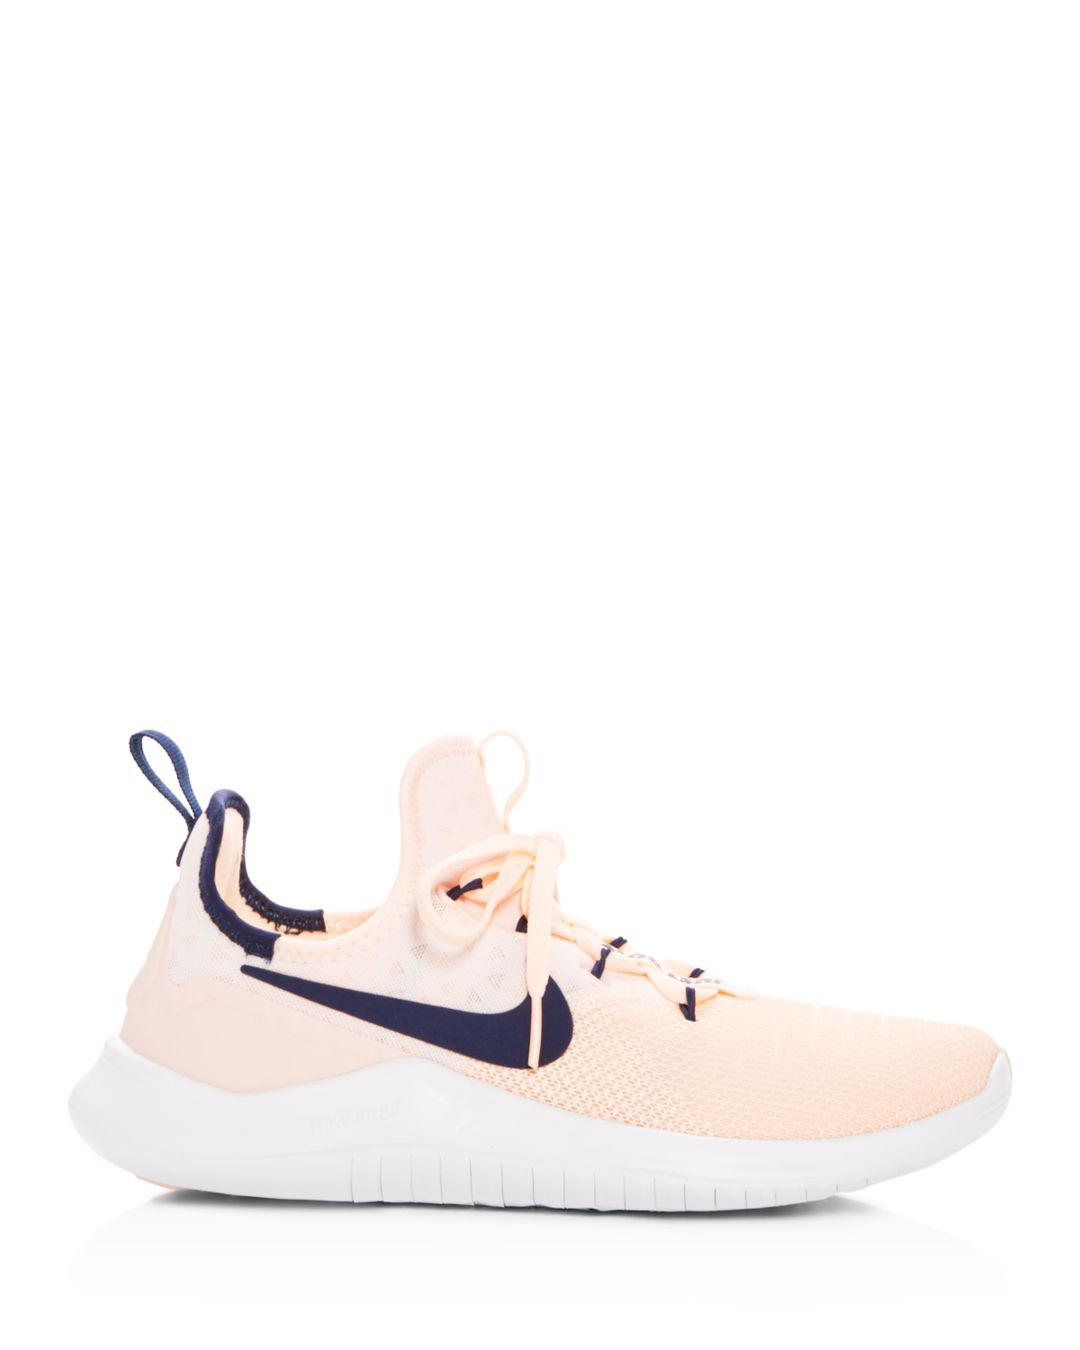 new arrival 33e00 5bbf4 Lyst - Nike Womens Free Tr 8 Lace Up Sneakers - Save 30.0%